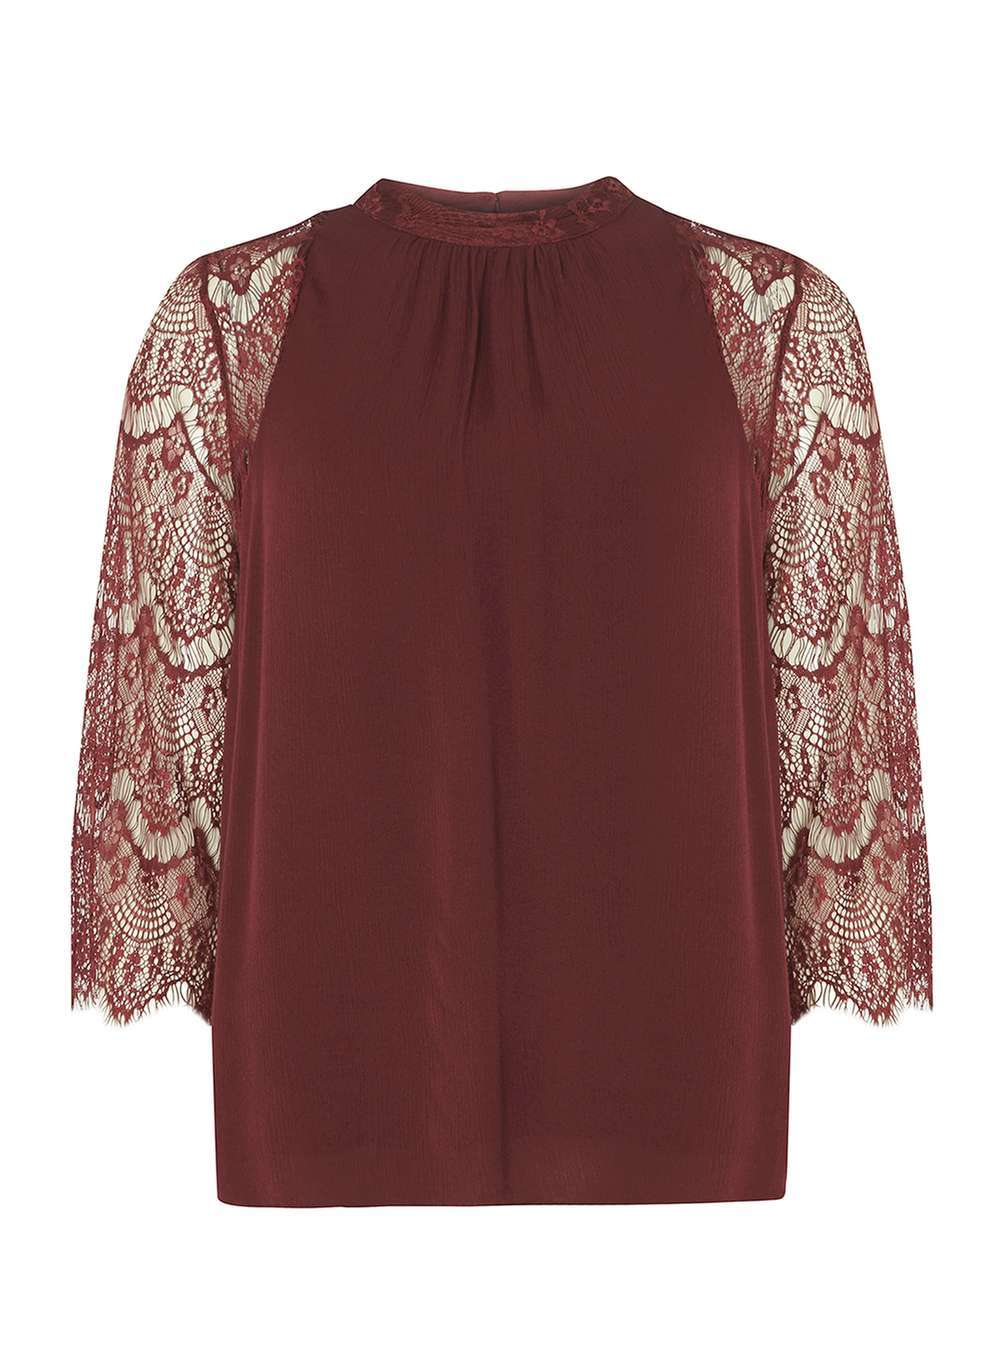 Womens **Vila Wine Lace Sleeve Blouse Red - pattern: plain; neckline: high neck; bust detail: sheer at bust; style: blouse; predominant colour: burgundy; occasions: evening; length: standard; fibres: viscose/rayon - 100%; fit: body skimming; sleeve length: 3/4 length; sleeve style: standard; texture group: sheer fabrics/chiffon/organza etc.; pattern type: fabric; embellishment: lace; season: a/w 2016